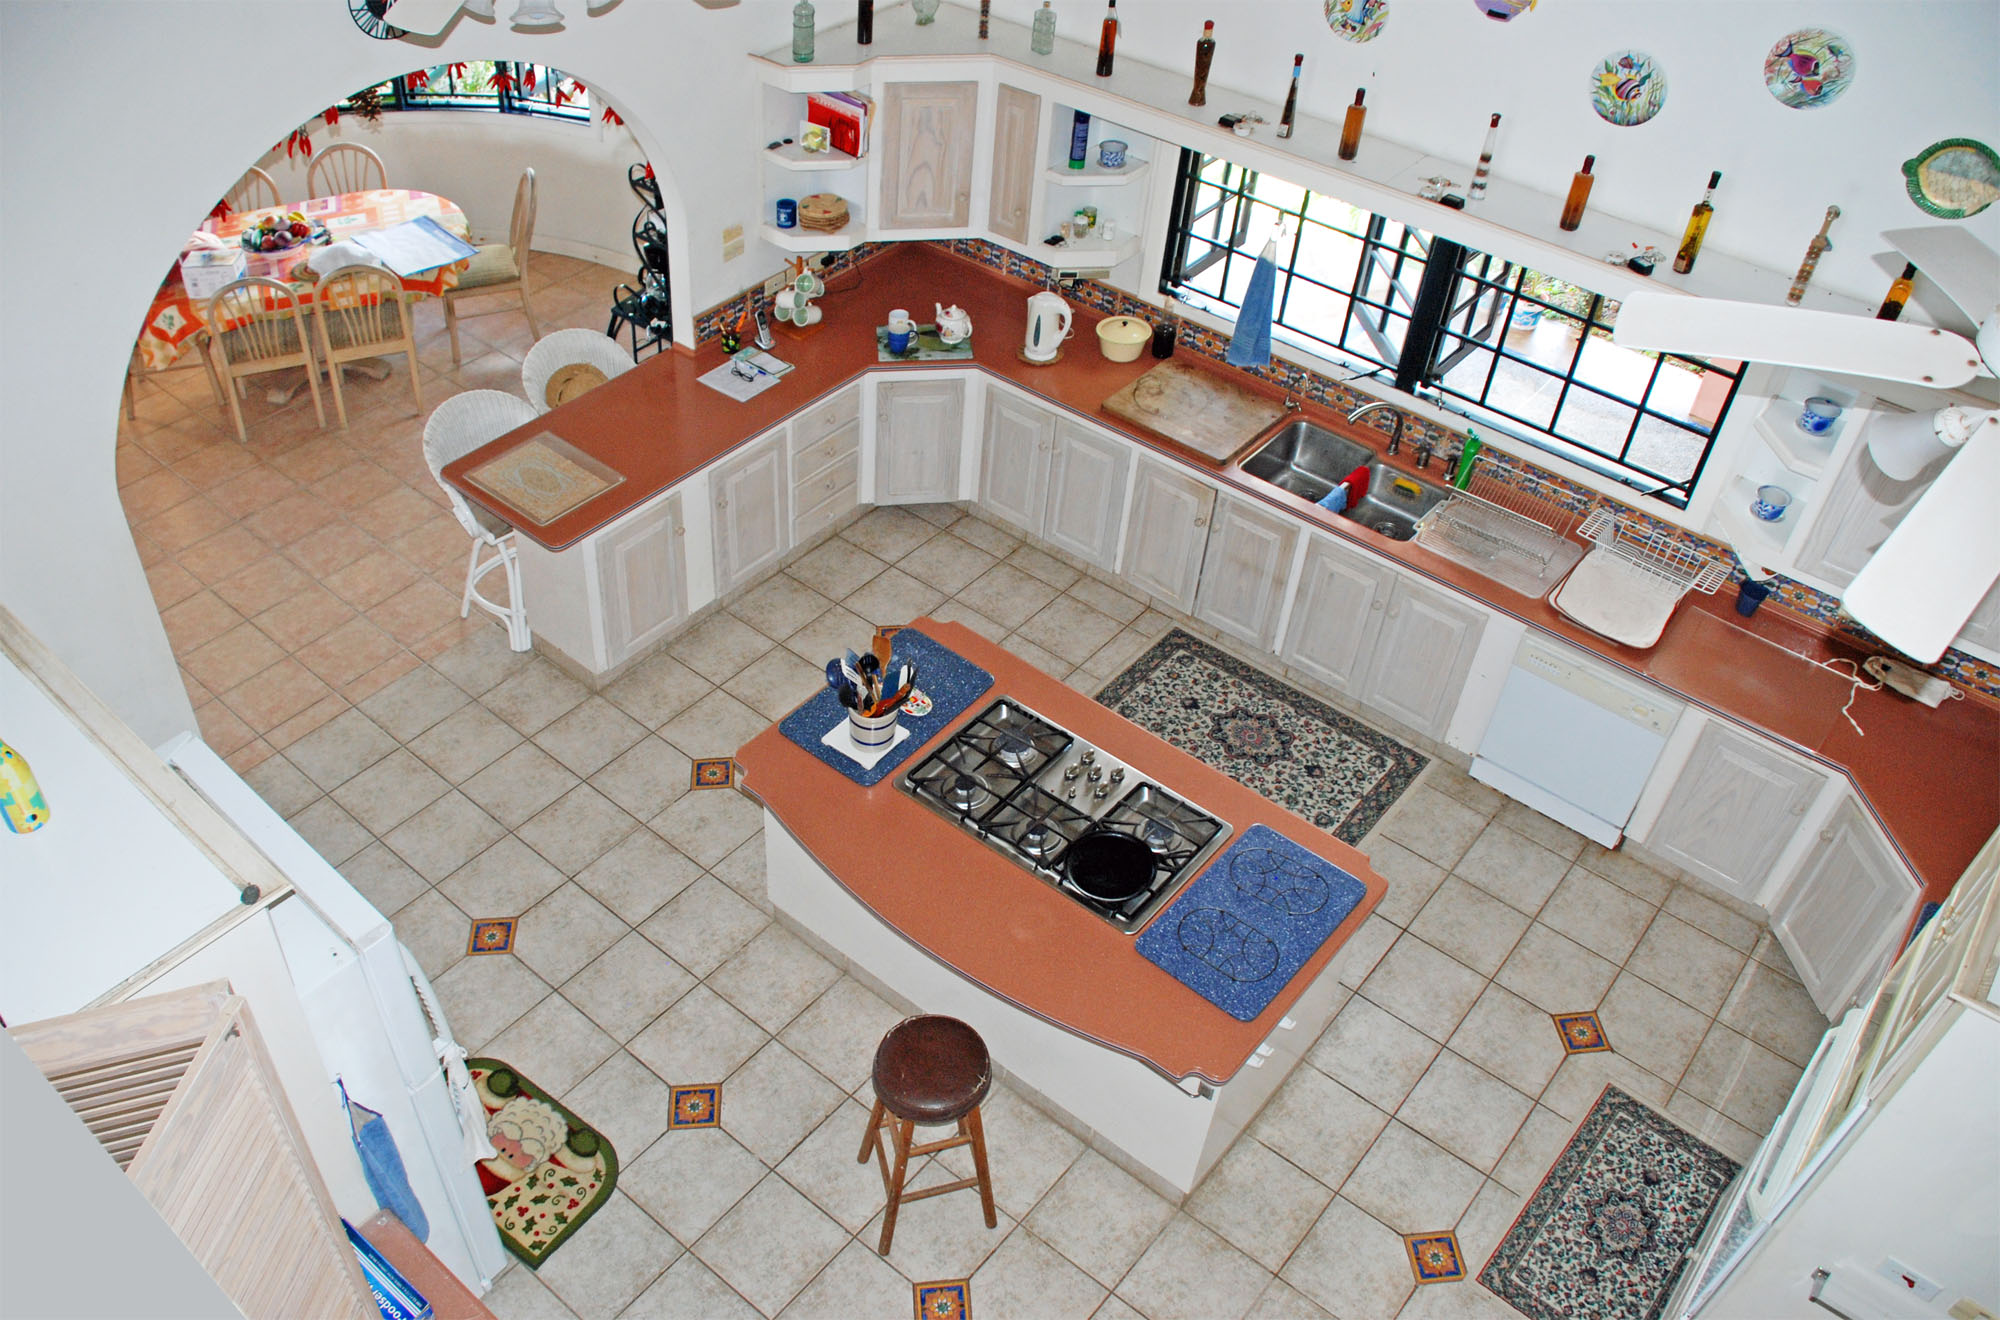 SOL Y MAR VILLA, TOBAGO W.I. Kitchen and part of the breakfast room from loft above